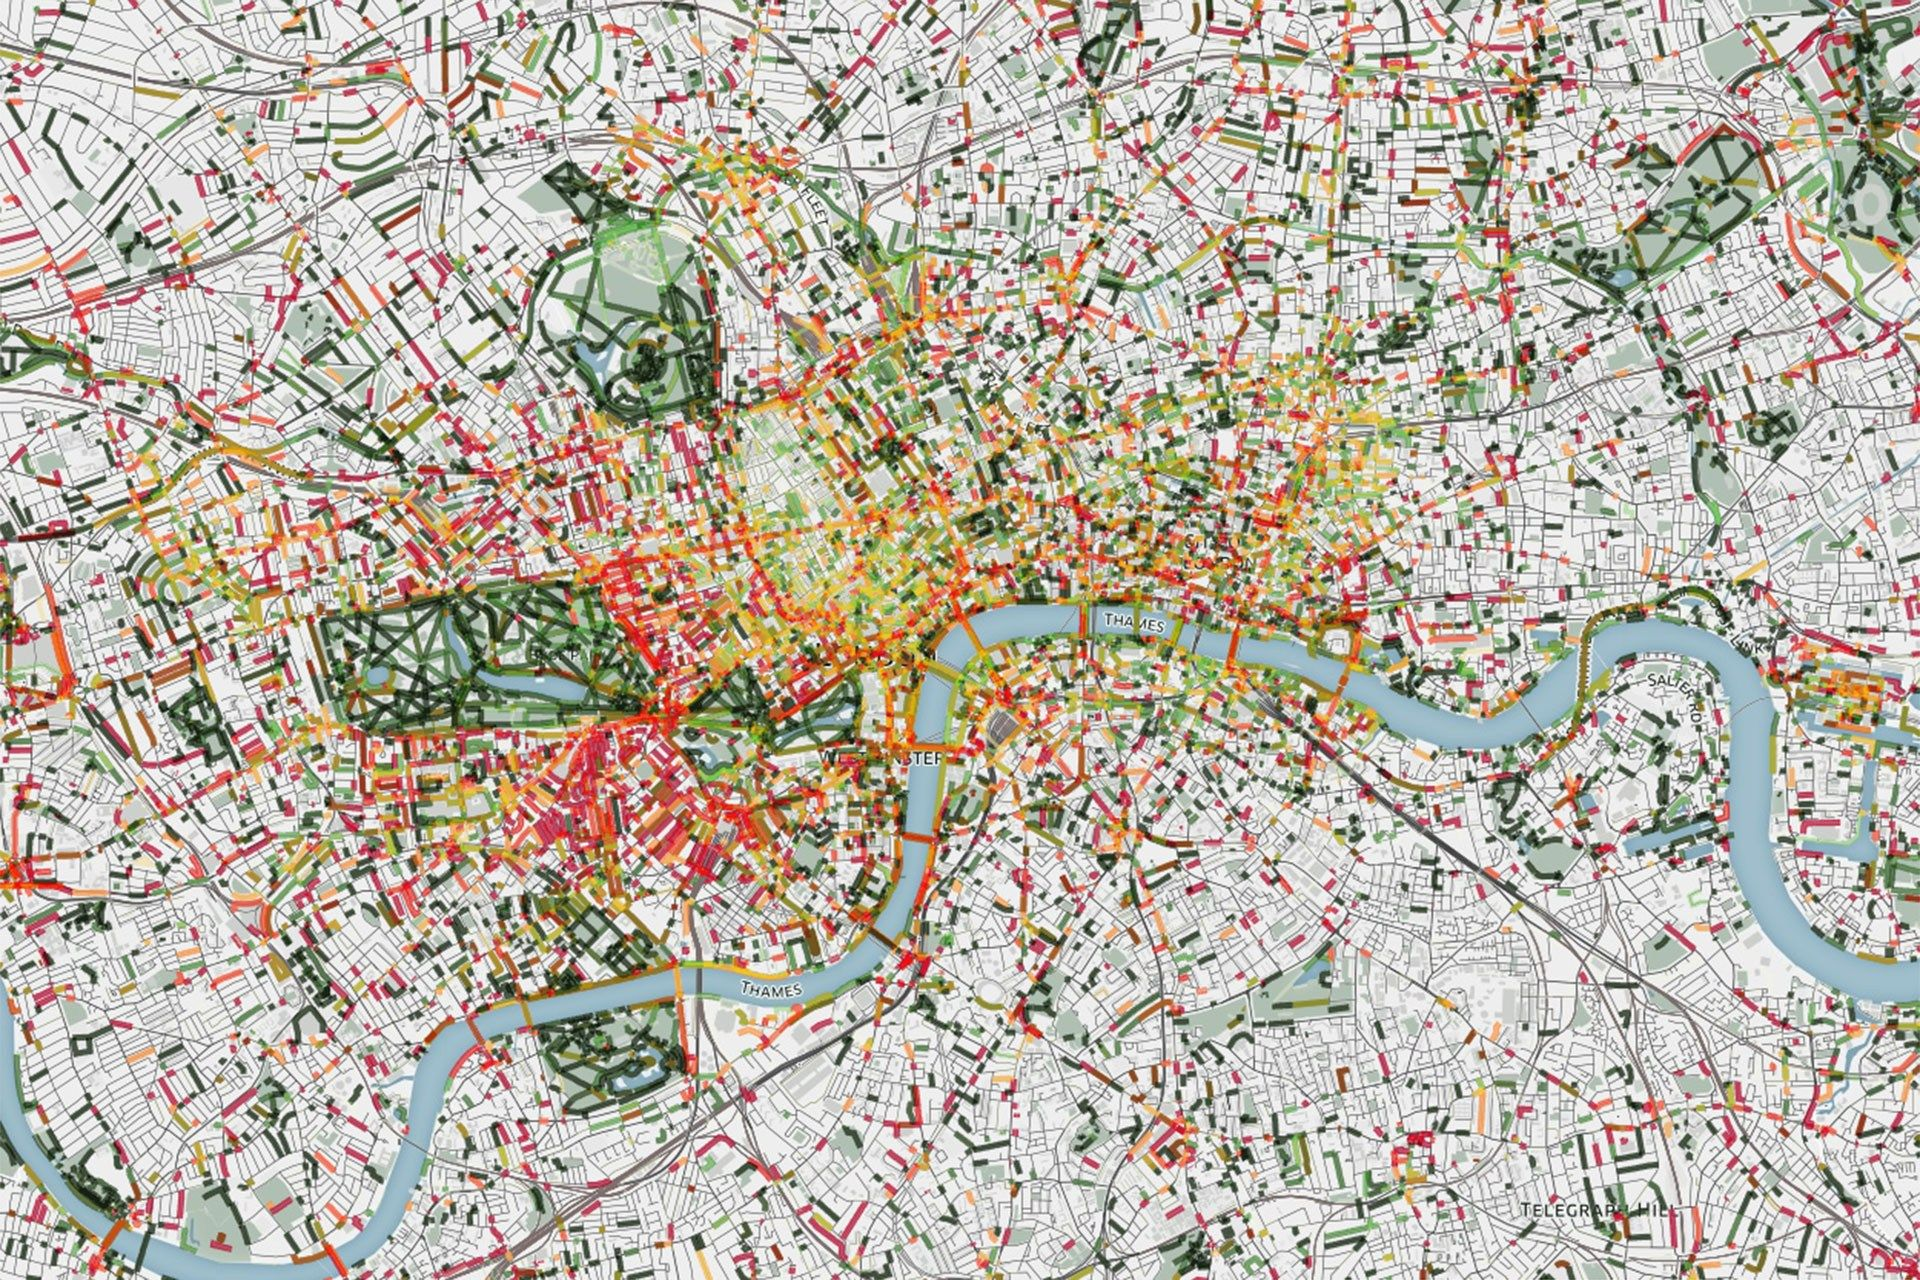 London 'stinkmap' could change urban planning (Wired UK)